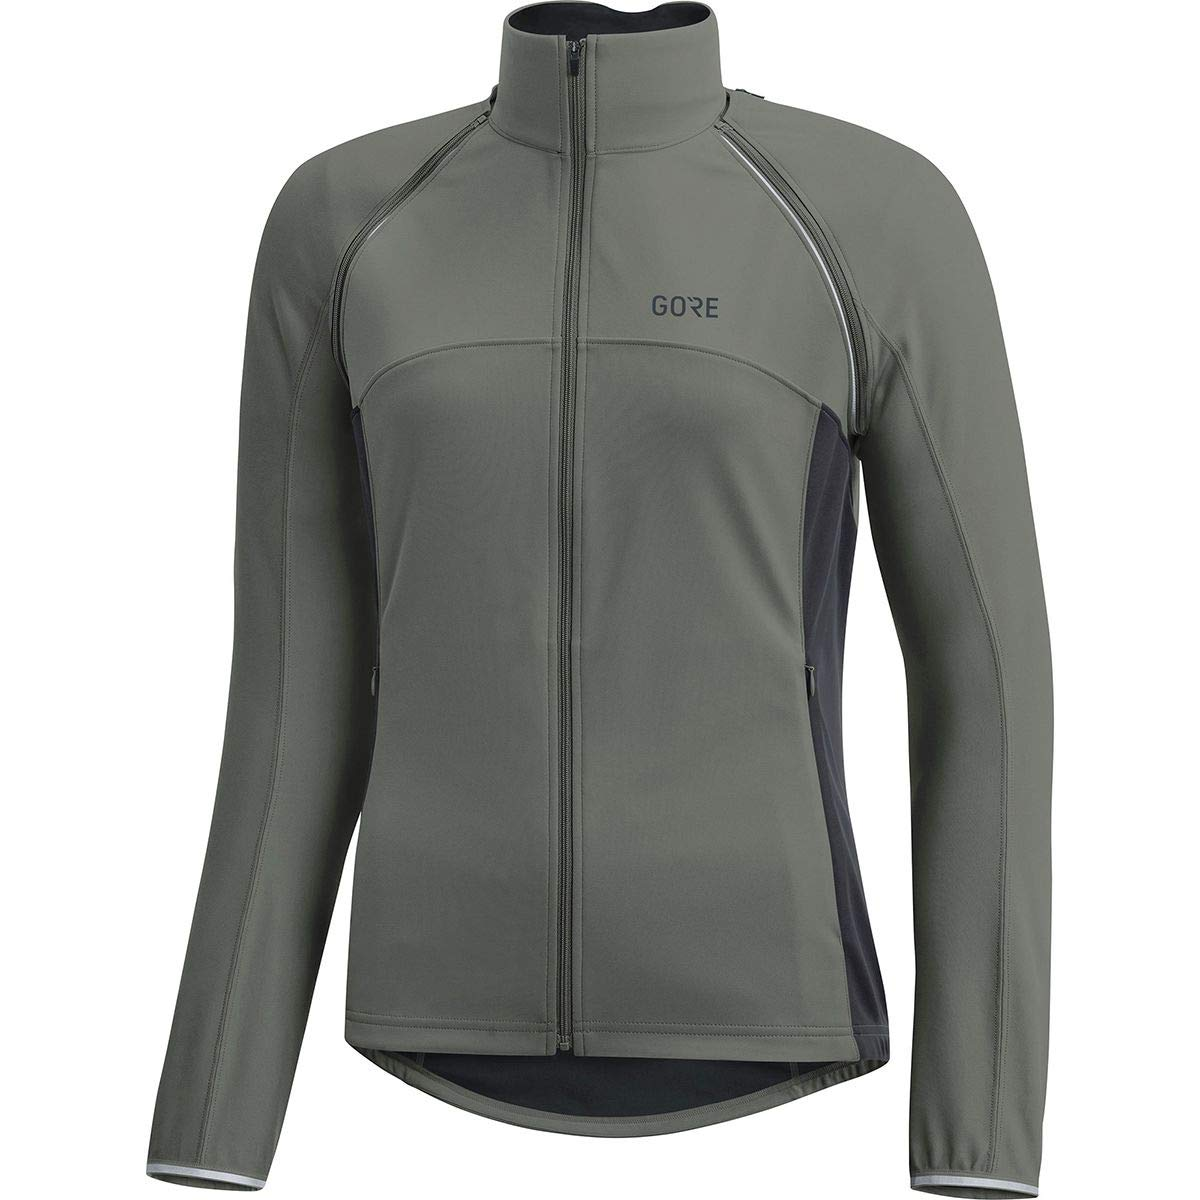 GORE Wear Women's Windproof Cycling Jacket, Removable Sleeves, GORE Wear C3 Women's GORE Wear WINDSTOPPER Phantom Zip-Off Jacket, Size: XS, Color: Castor Gray/Terra Gray, 100191 by GORE WEAR (Image #1)